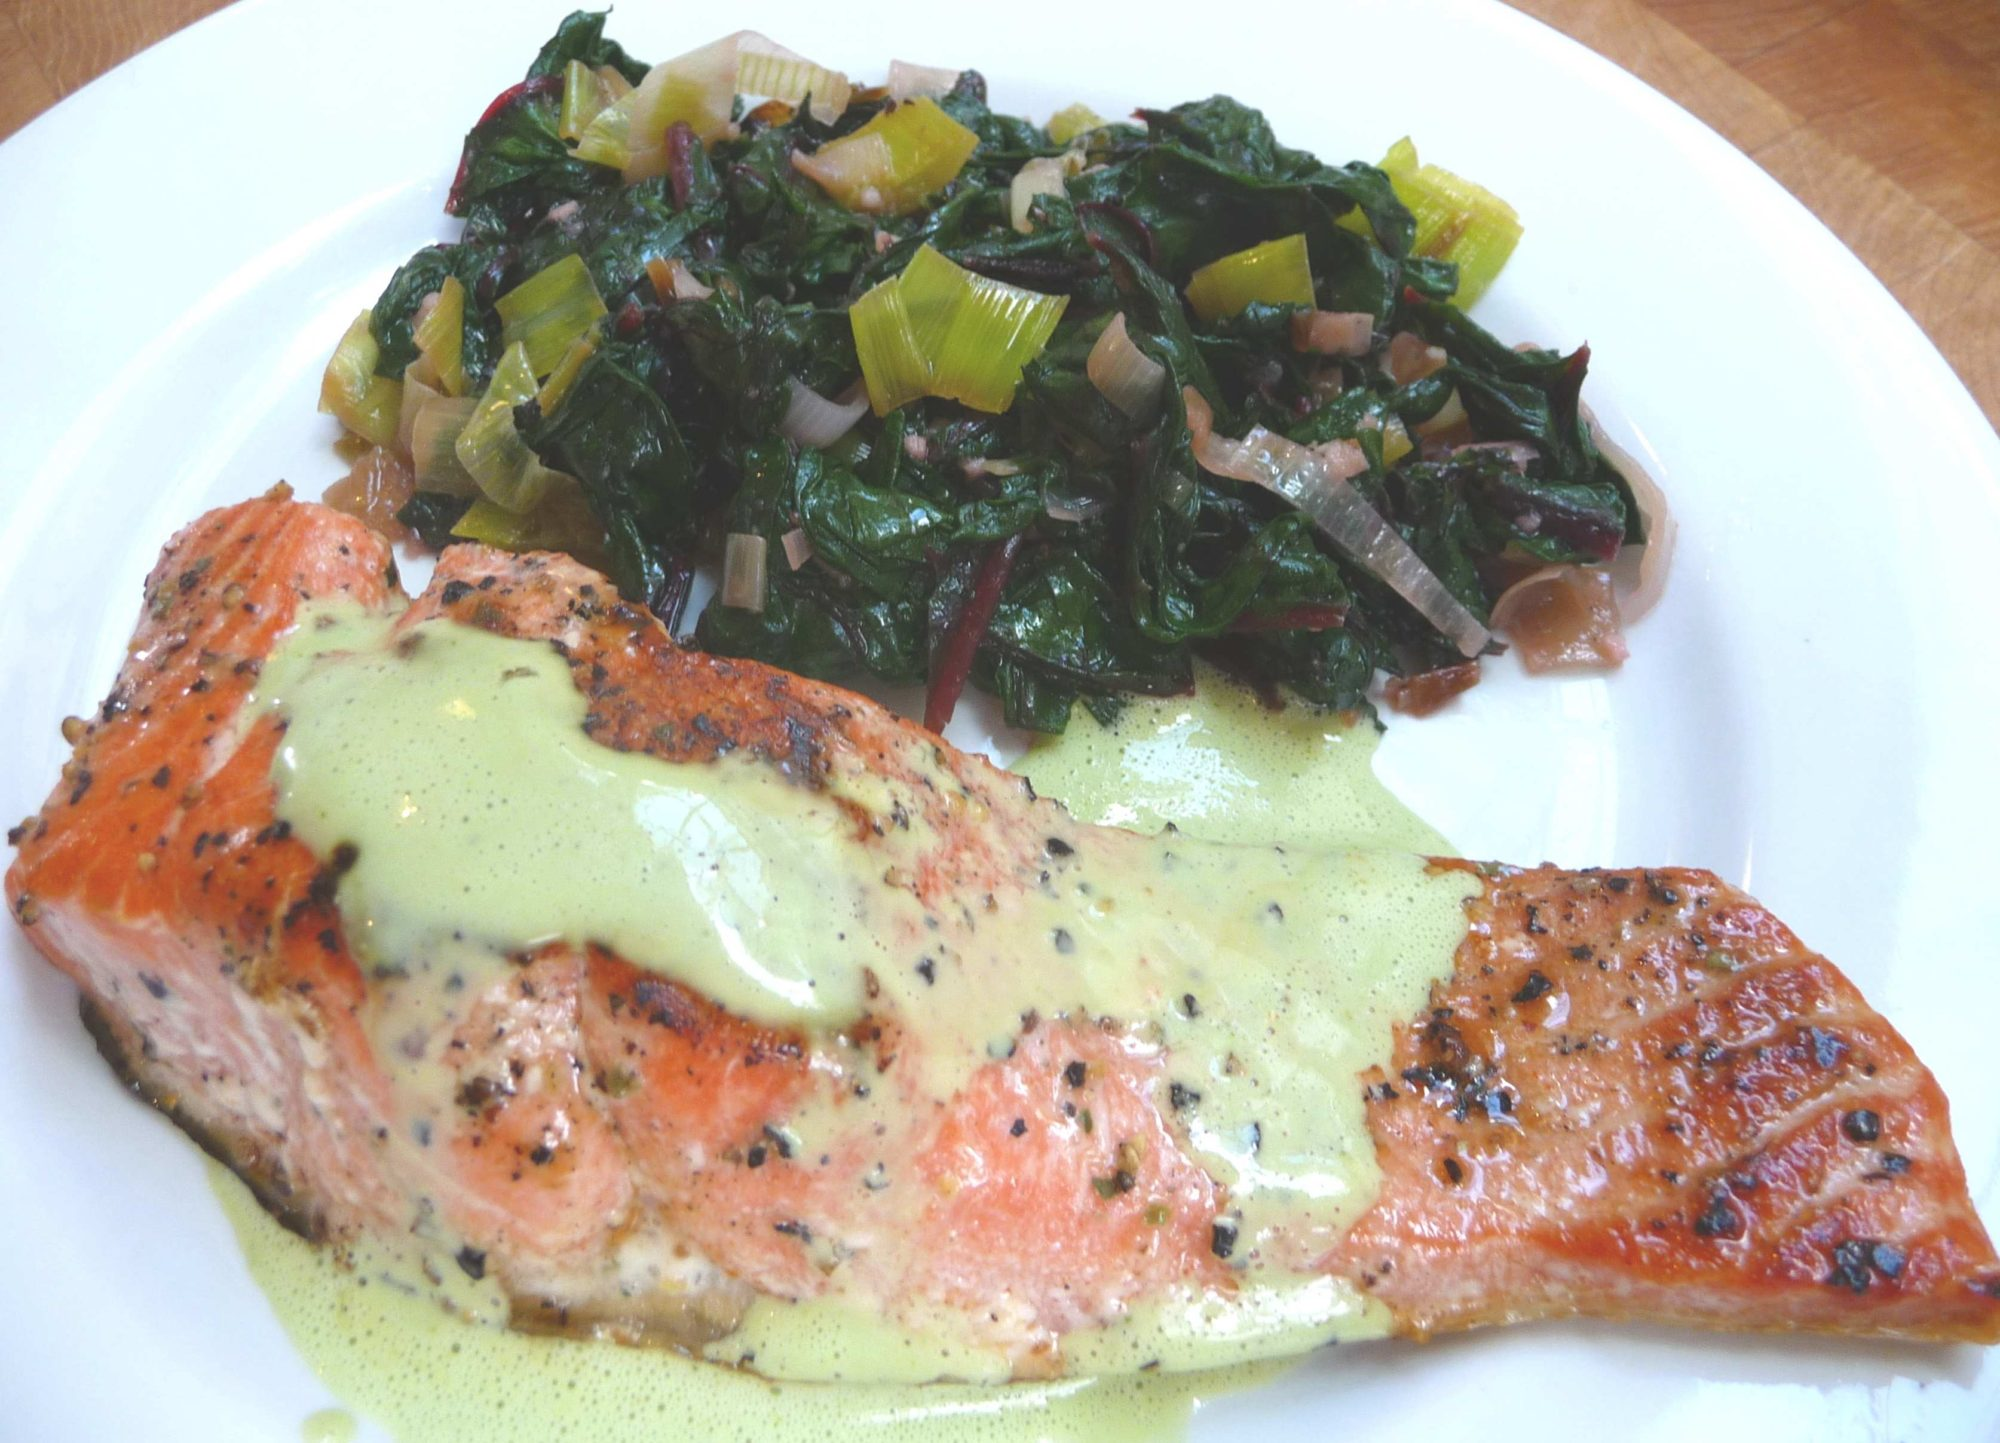 Seared Salmon with Wasabi Sauce and Wilted Greens (GF)